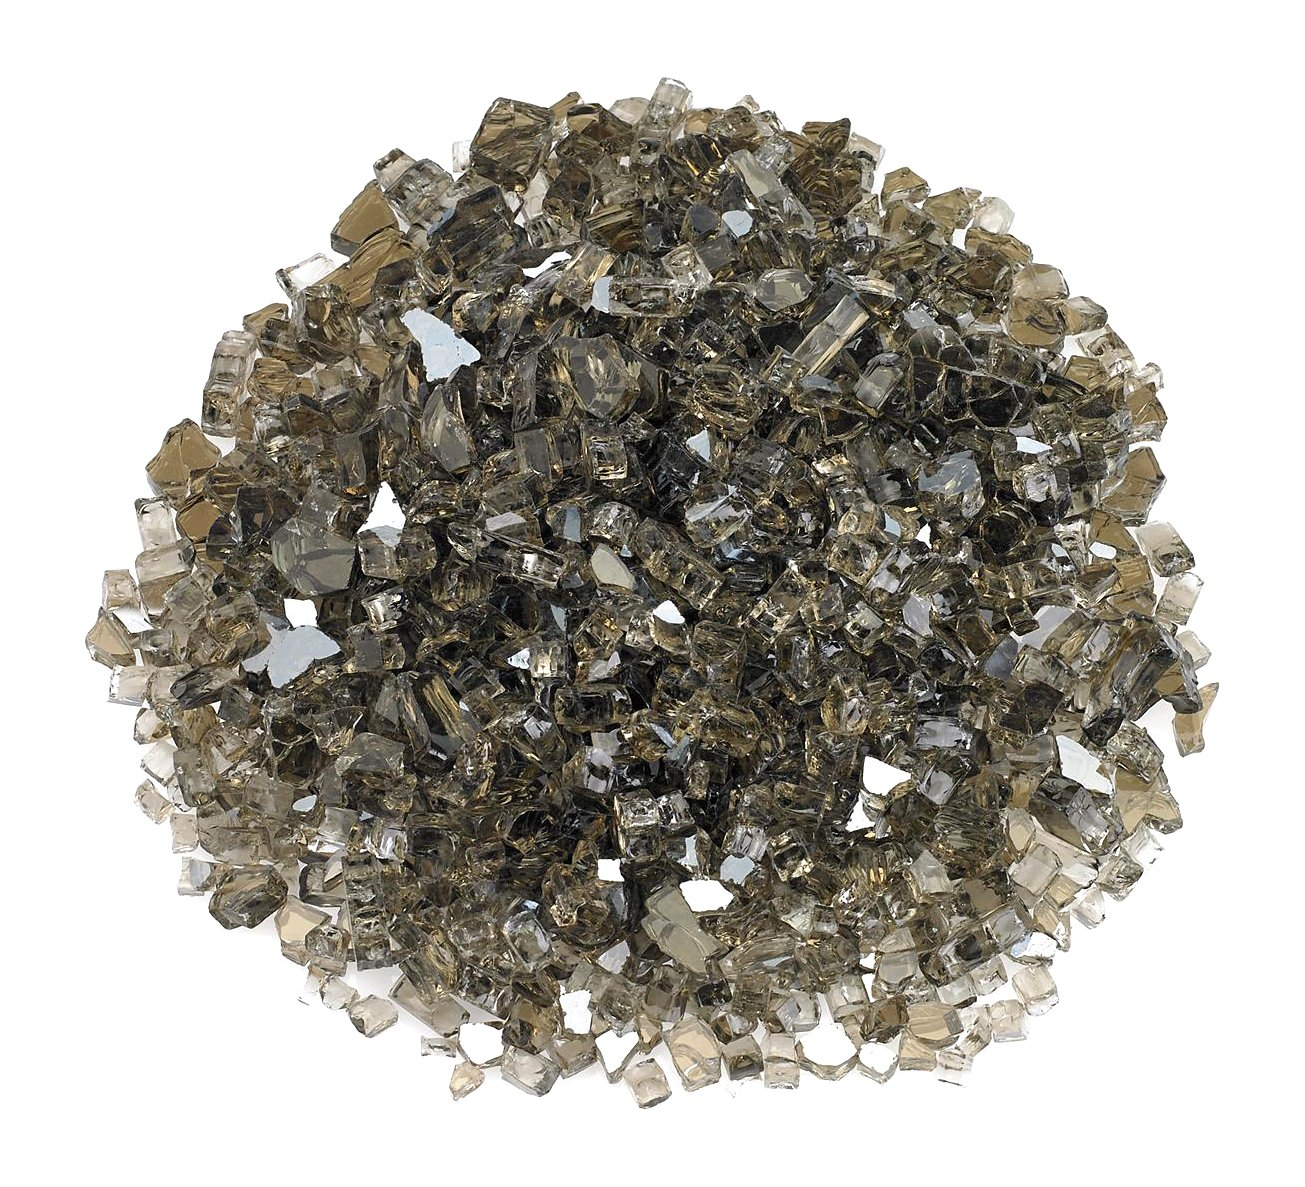 "American Fireglass 1/4"" Bronze Reflective Fire Glass, 20 lb. Bag"